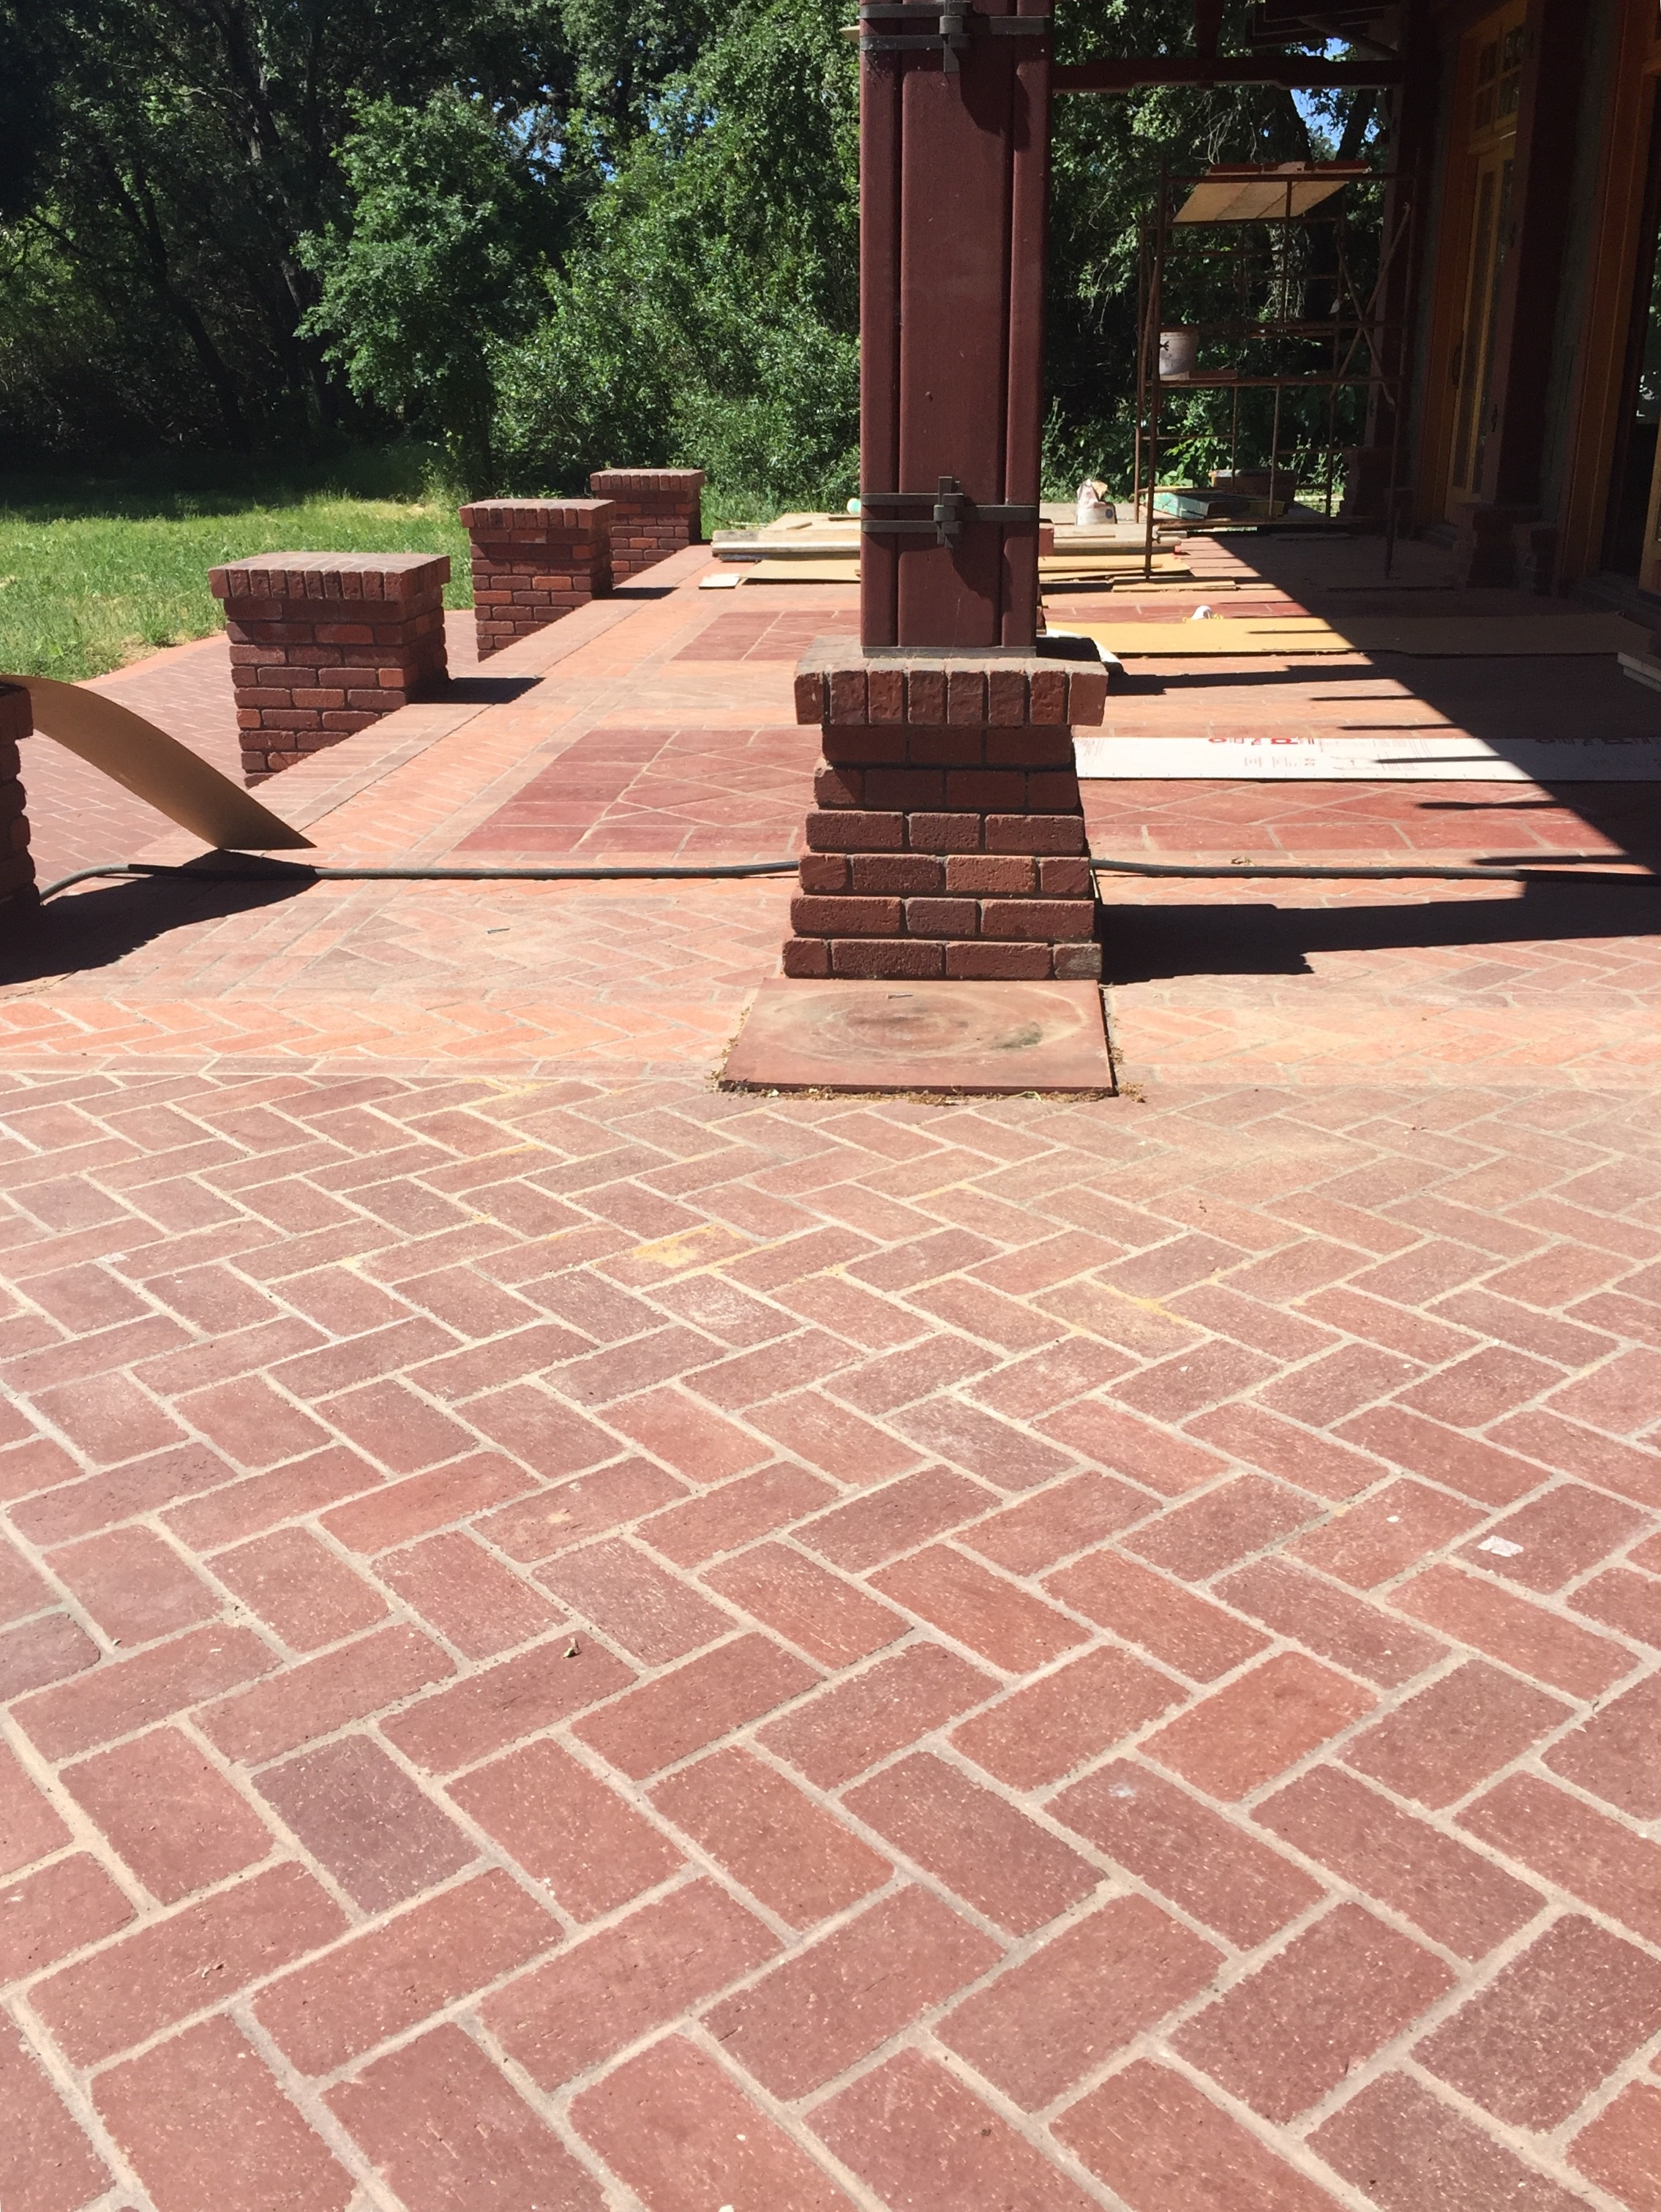 Brick patio Fairfield, CA